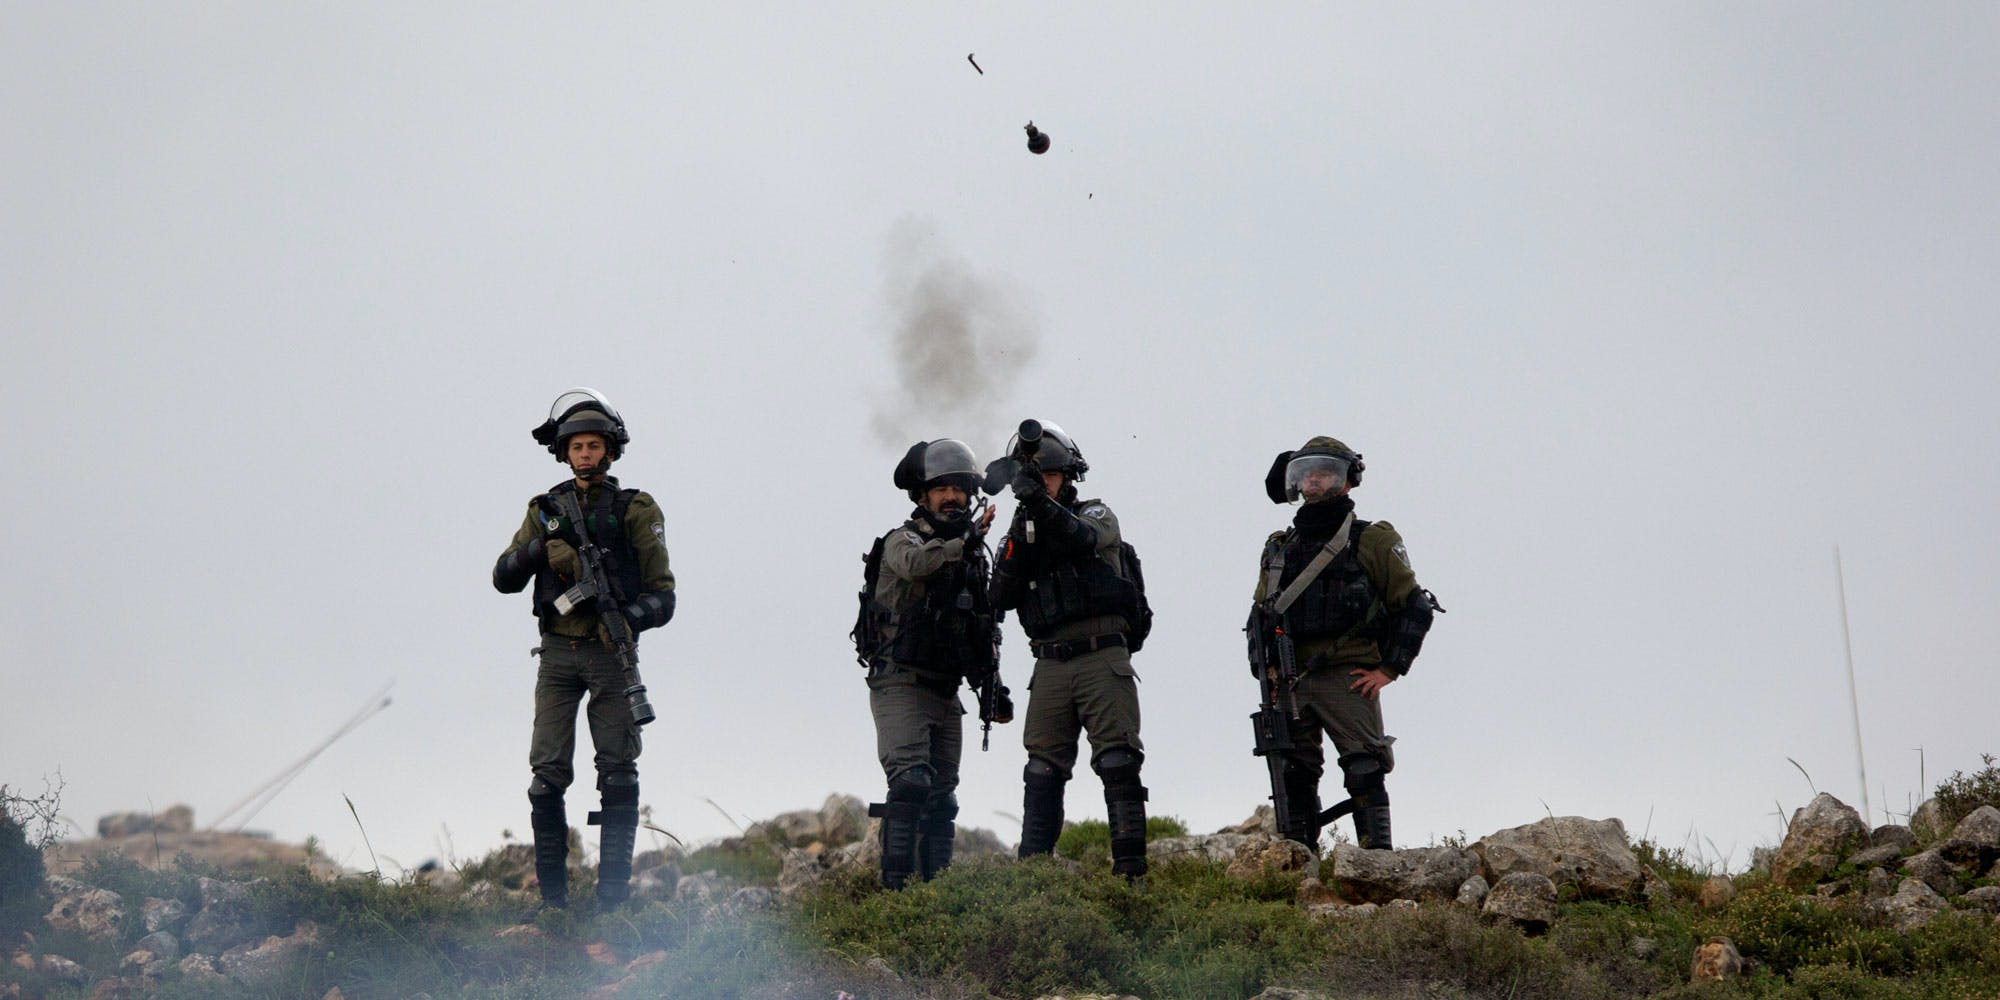 Israeli troops fire teargas at protesters during a clashes following a protest to mark the Land Day, in the village of Qusra, near the West Bank City of Nablus, Friday, March 30, 2018. (AP Photo/Majdi Mohammed)